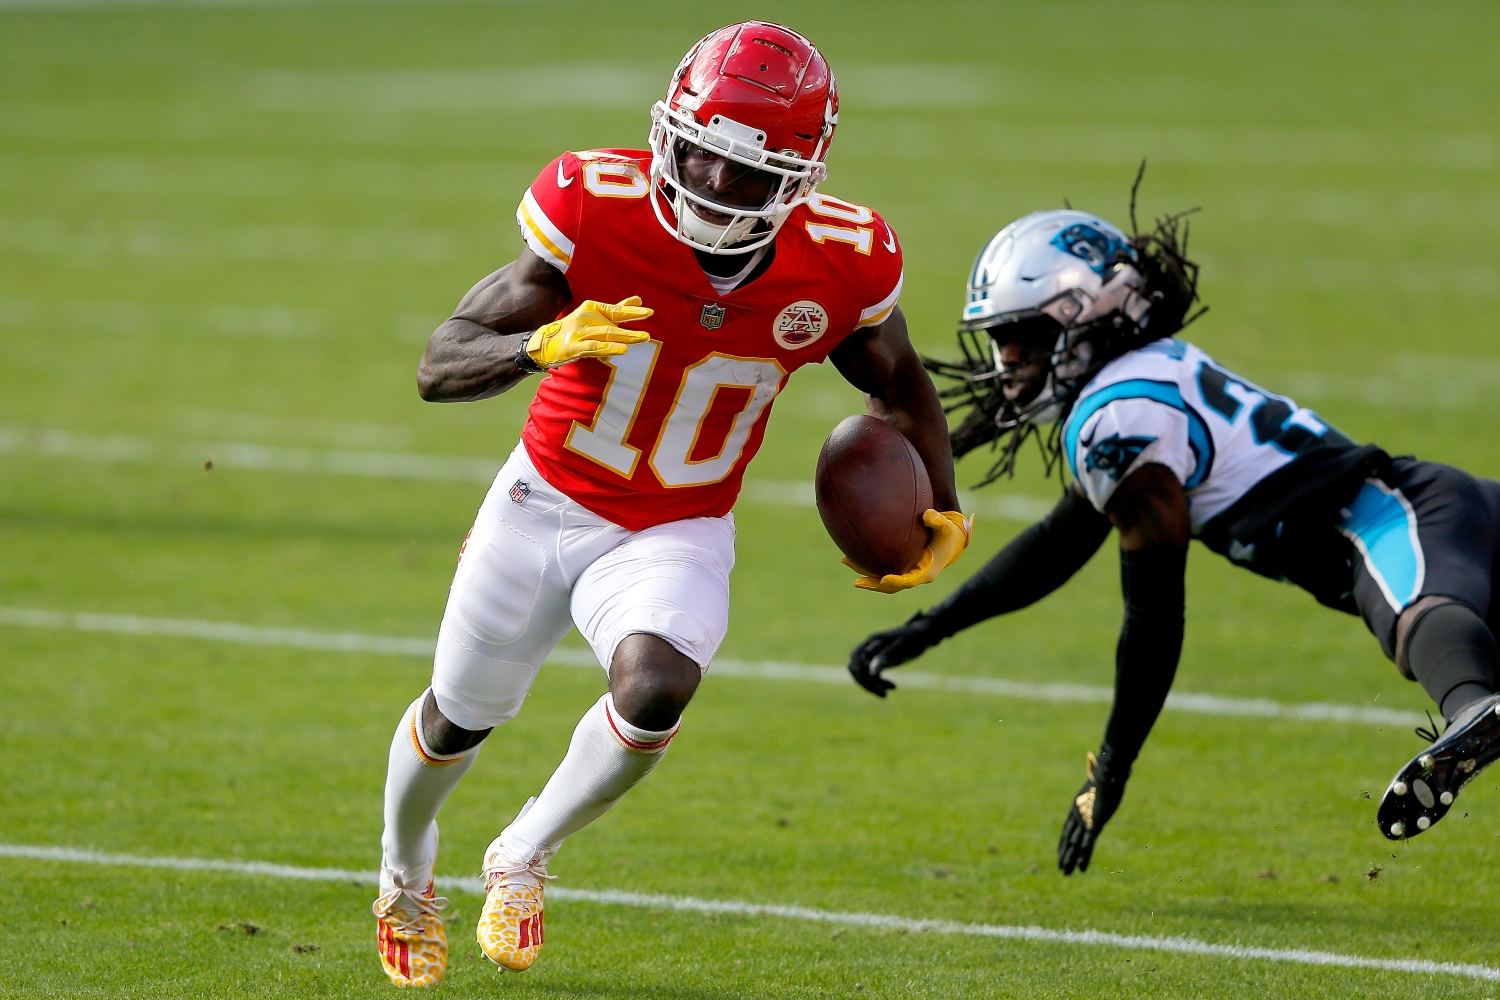 Tyreek Hill of the Kansas City Chiefs carries the ball after making a catch against the Carolina Panthers in the second quarter at Arrowhead Stadium.